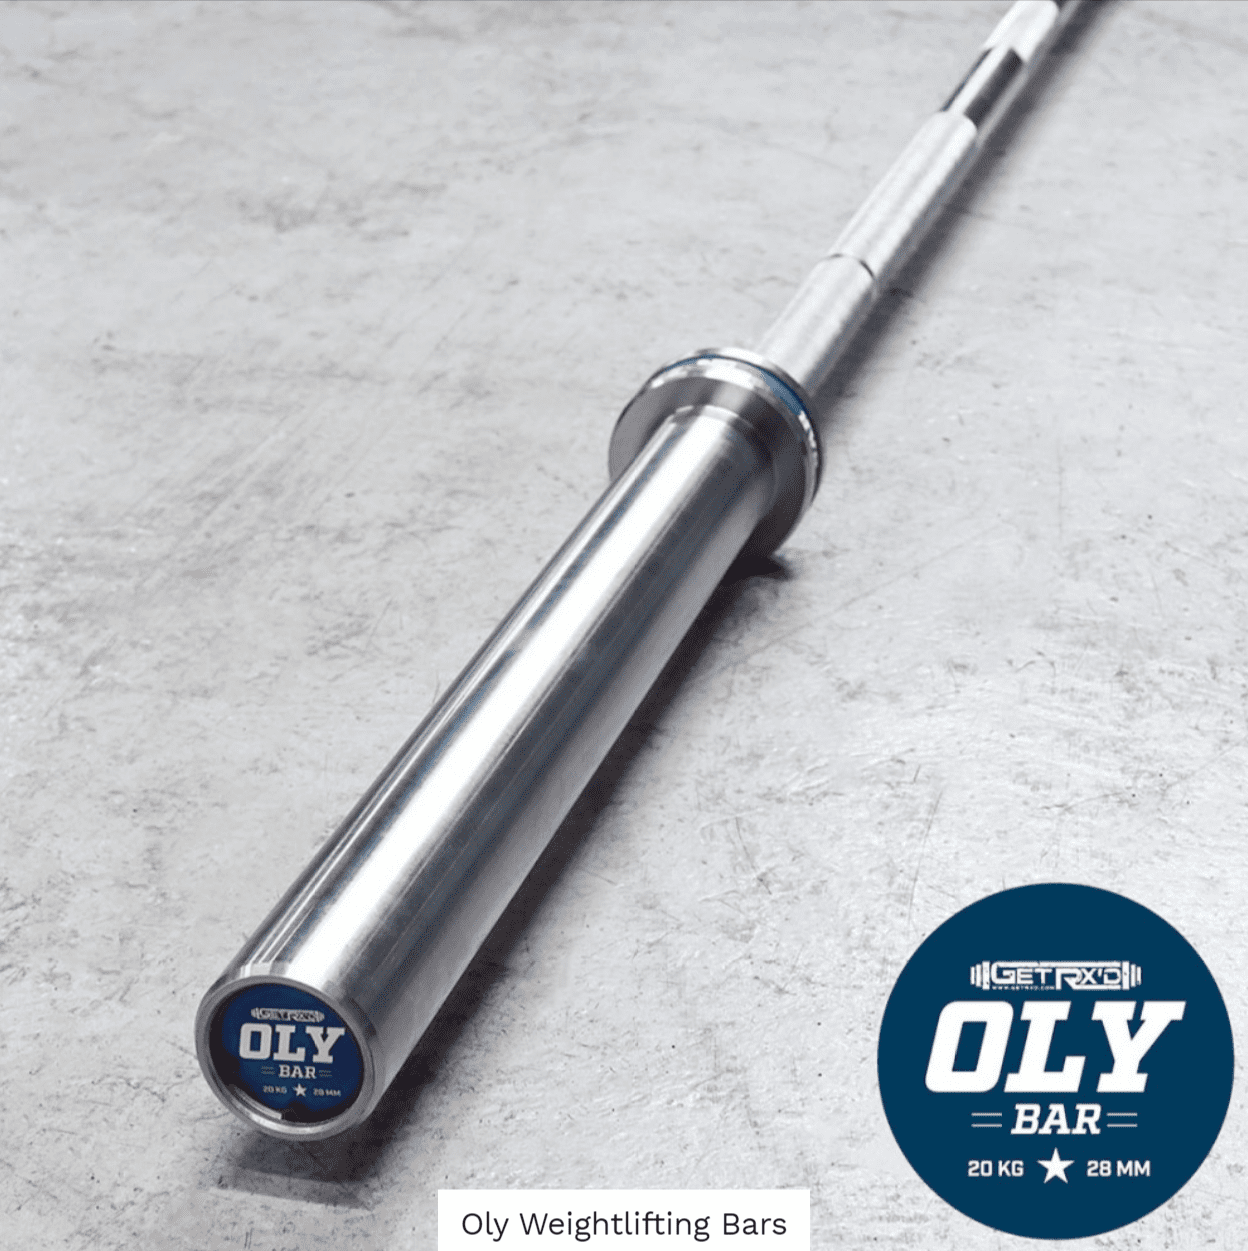 Oly Weightlifting Bar - Get RX'd